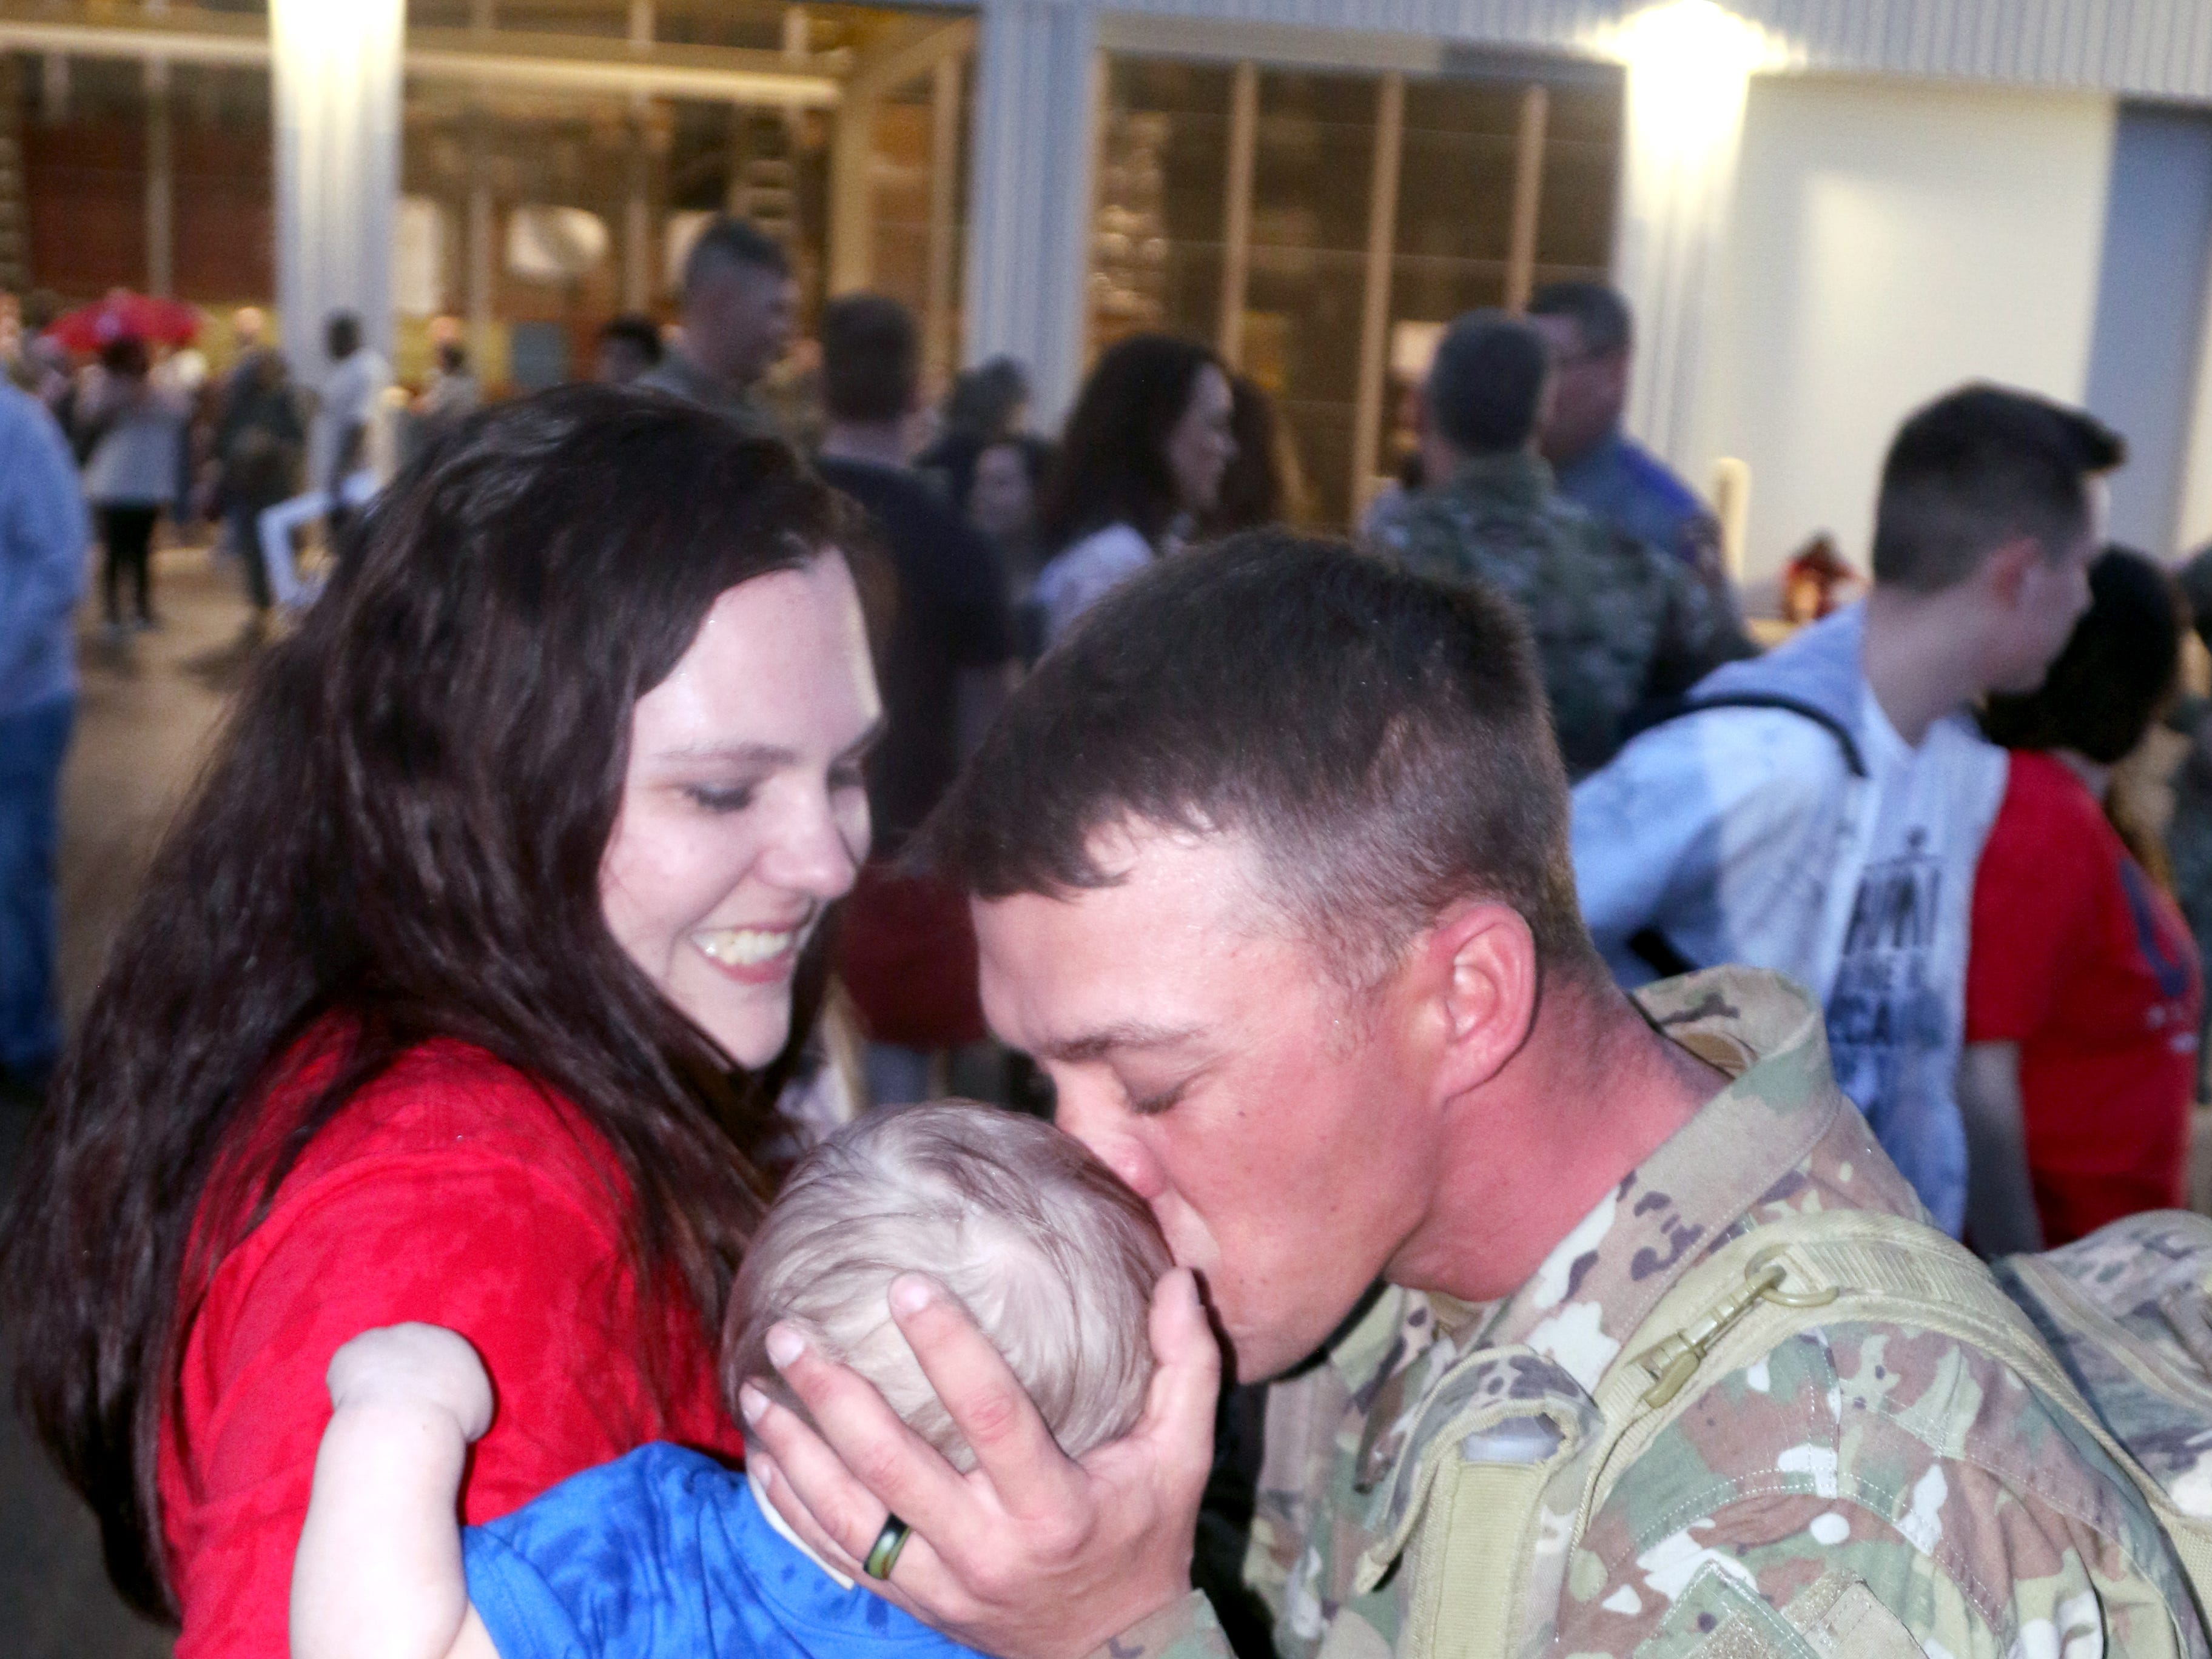 Staff Sgt. Carl Tate, with the 106th Brigade Support Battalion, greets his wife, Rebekah, and son, Kevin, at Thompson Field in Flowood, Mississippi, Feb. 27, 2019. Tate, of Bogue Chitto, was part of a contingent of the Mississippi Army National Guard's 155th Armored Brigade Combat Team returning home after serving in Kuwait in support of Operation Spartan Shield for approximately one year.